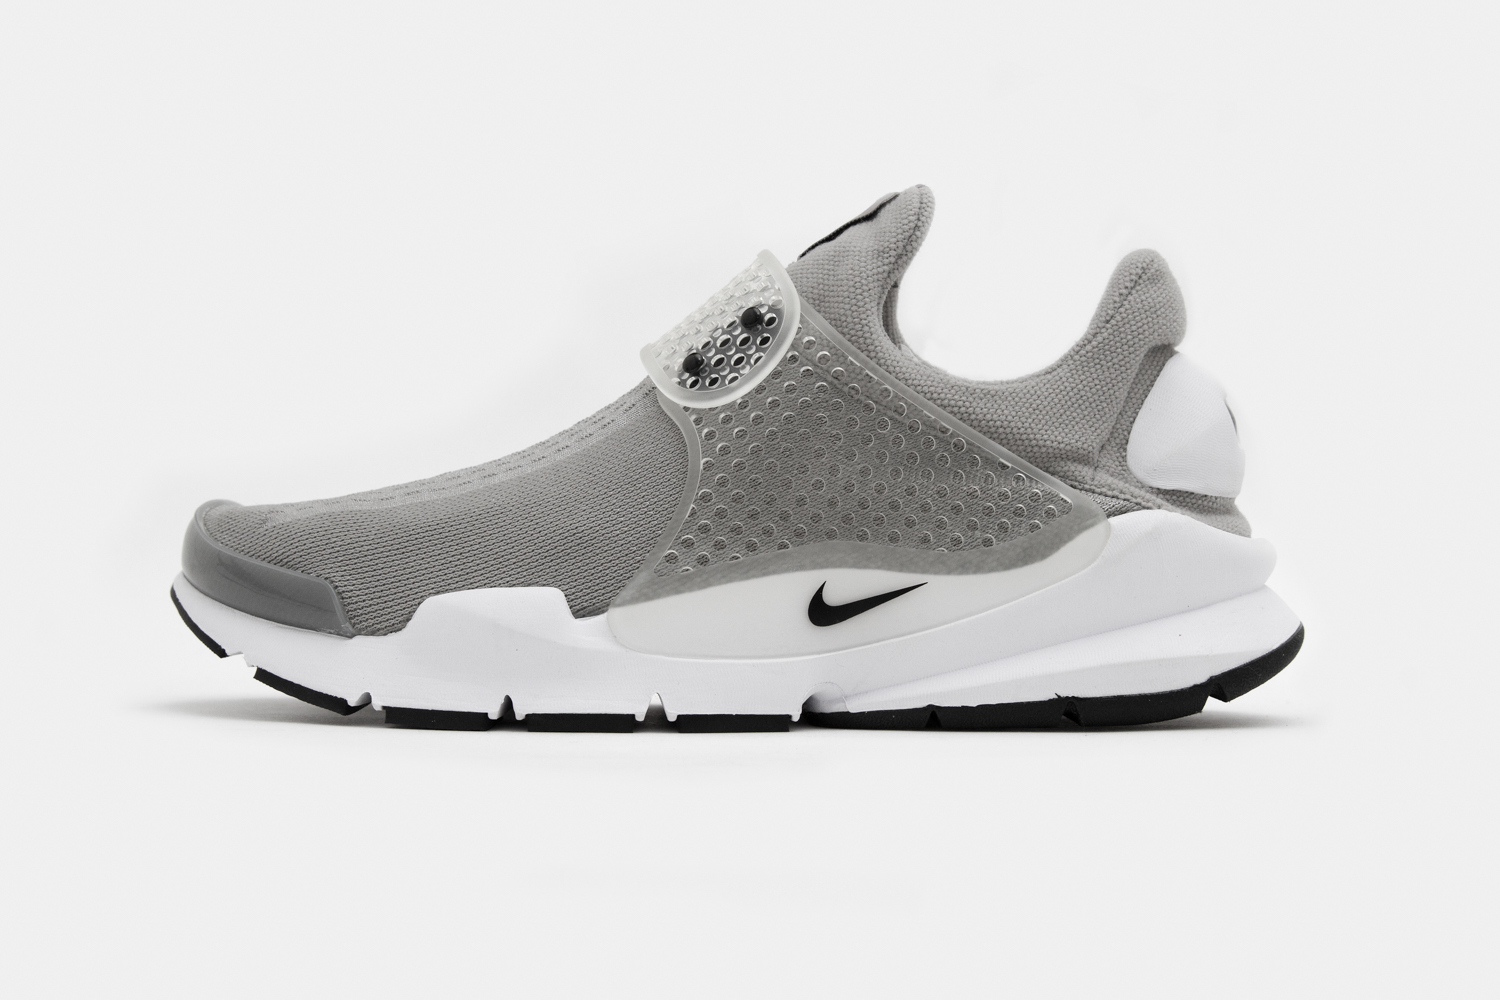 super popular daad4 b856f nike air presto vs nike sock dart sneakeroutlet